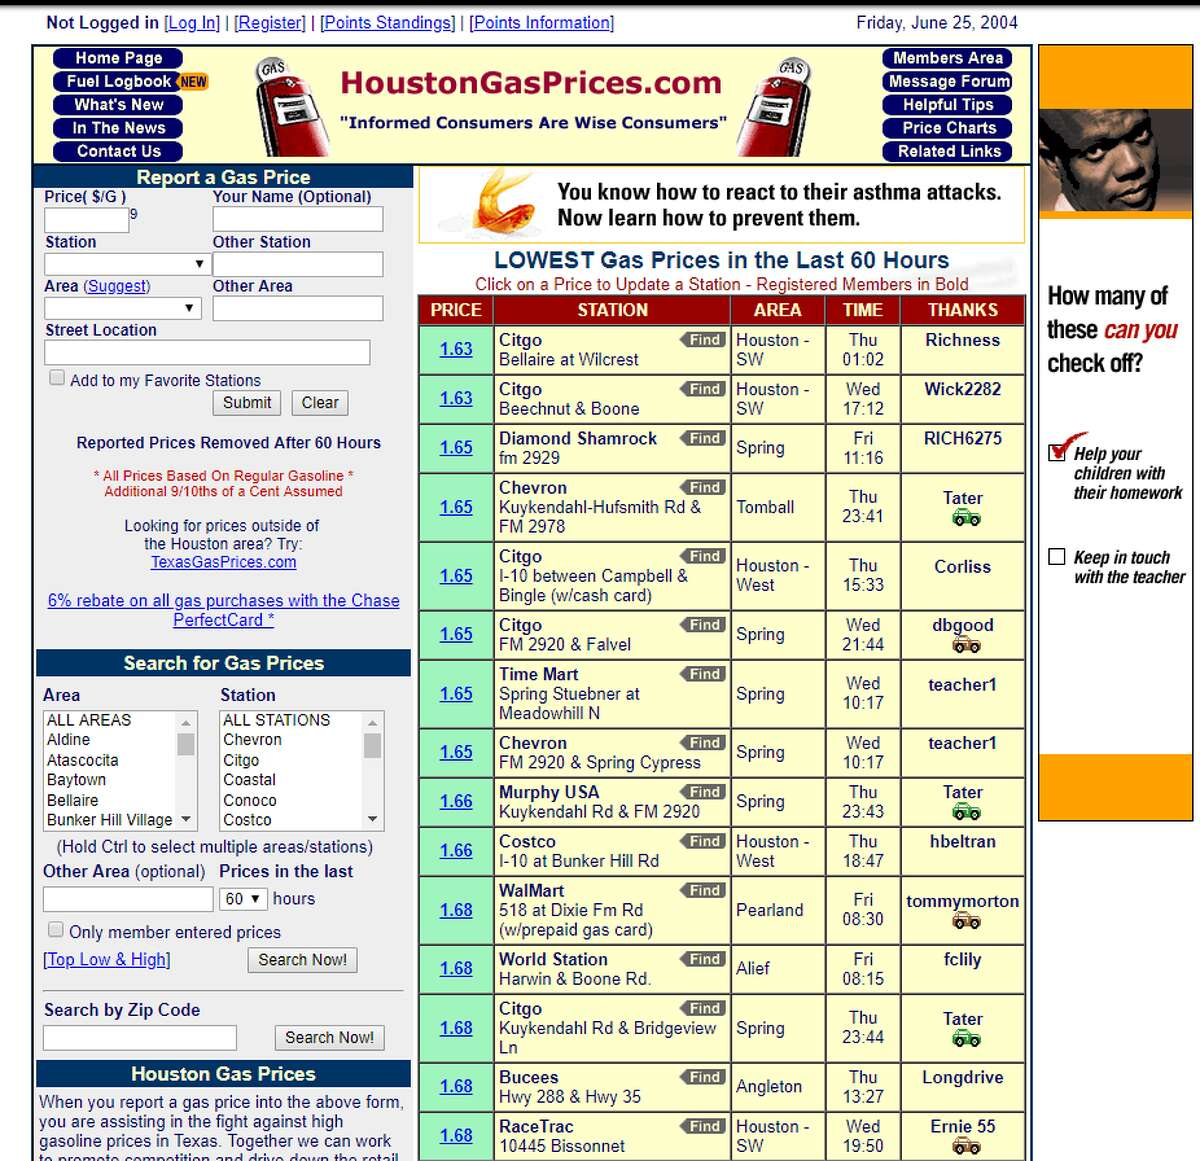 Houston Gas Prices Website: www.houstongasprices.com Screen capture date: June 25, 2004